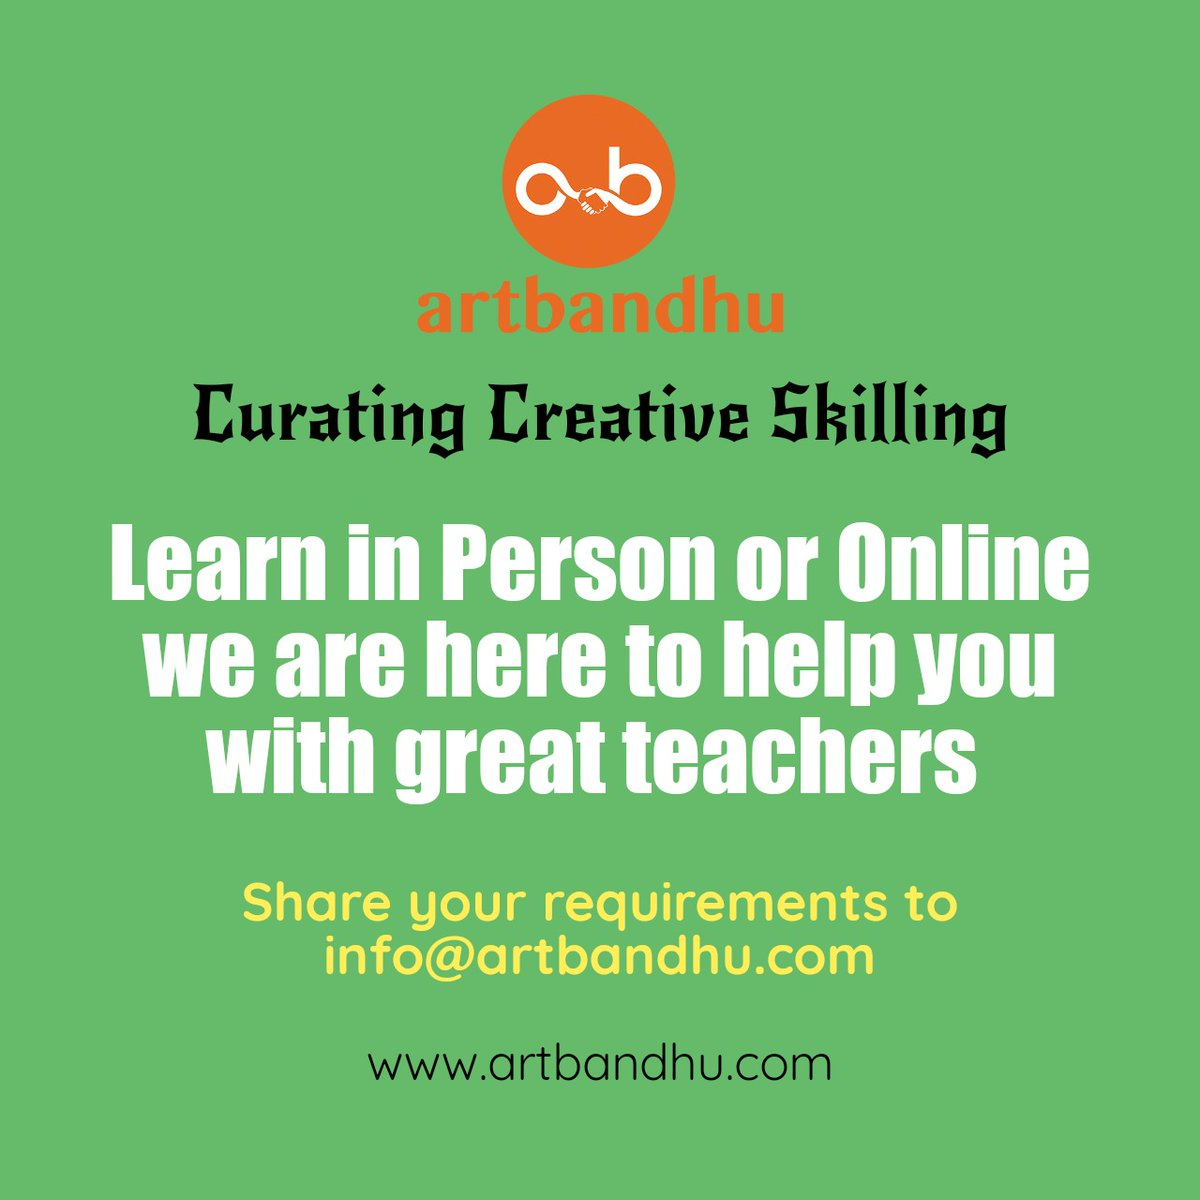 Looking for art teachers ? Share your requirements to info@artbandhu.com or post your creative needs via online form on http://www.artbandhu.com #art #creative #passion #hobby #learning #skilling #students #design #music #dance #actor #freelancer #gig #teacher #online #artistpic.twitter.com/iBJpPnEk5r